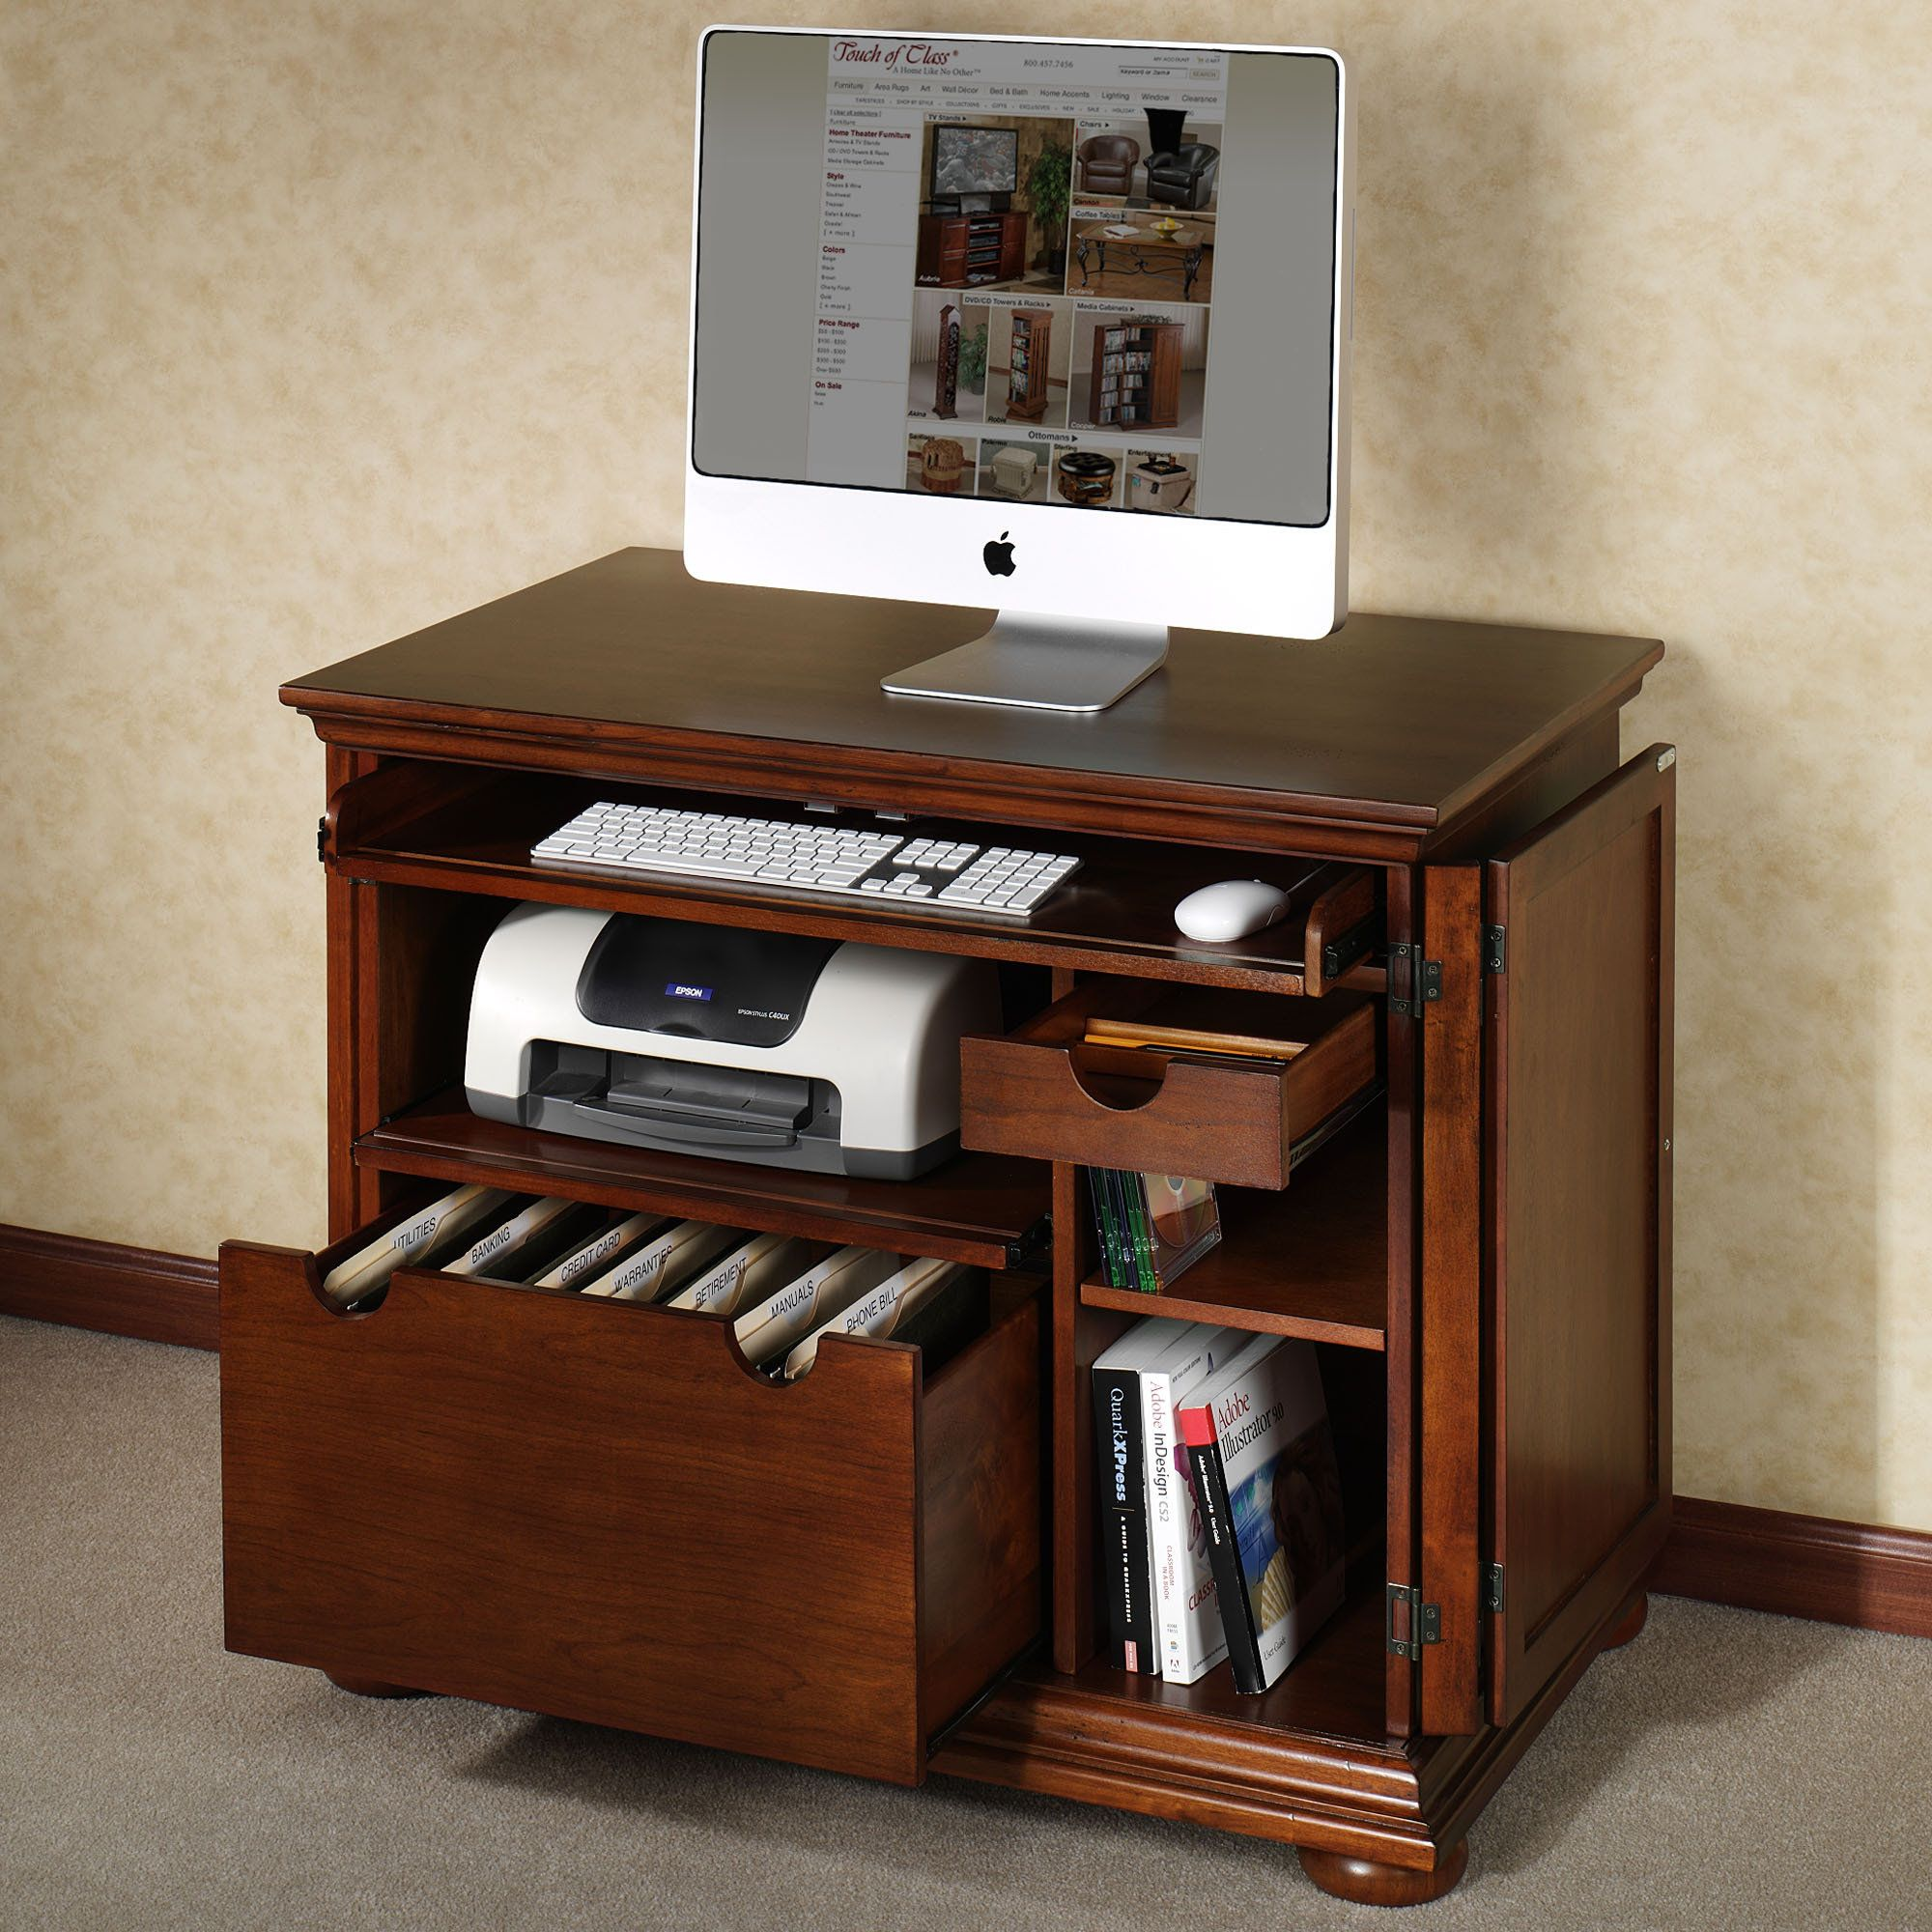 top compact that for work desk really diy your pin office home computer plans